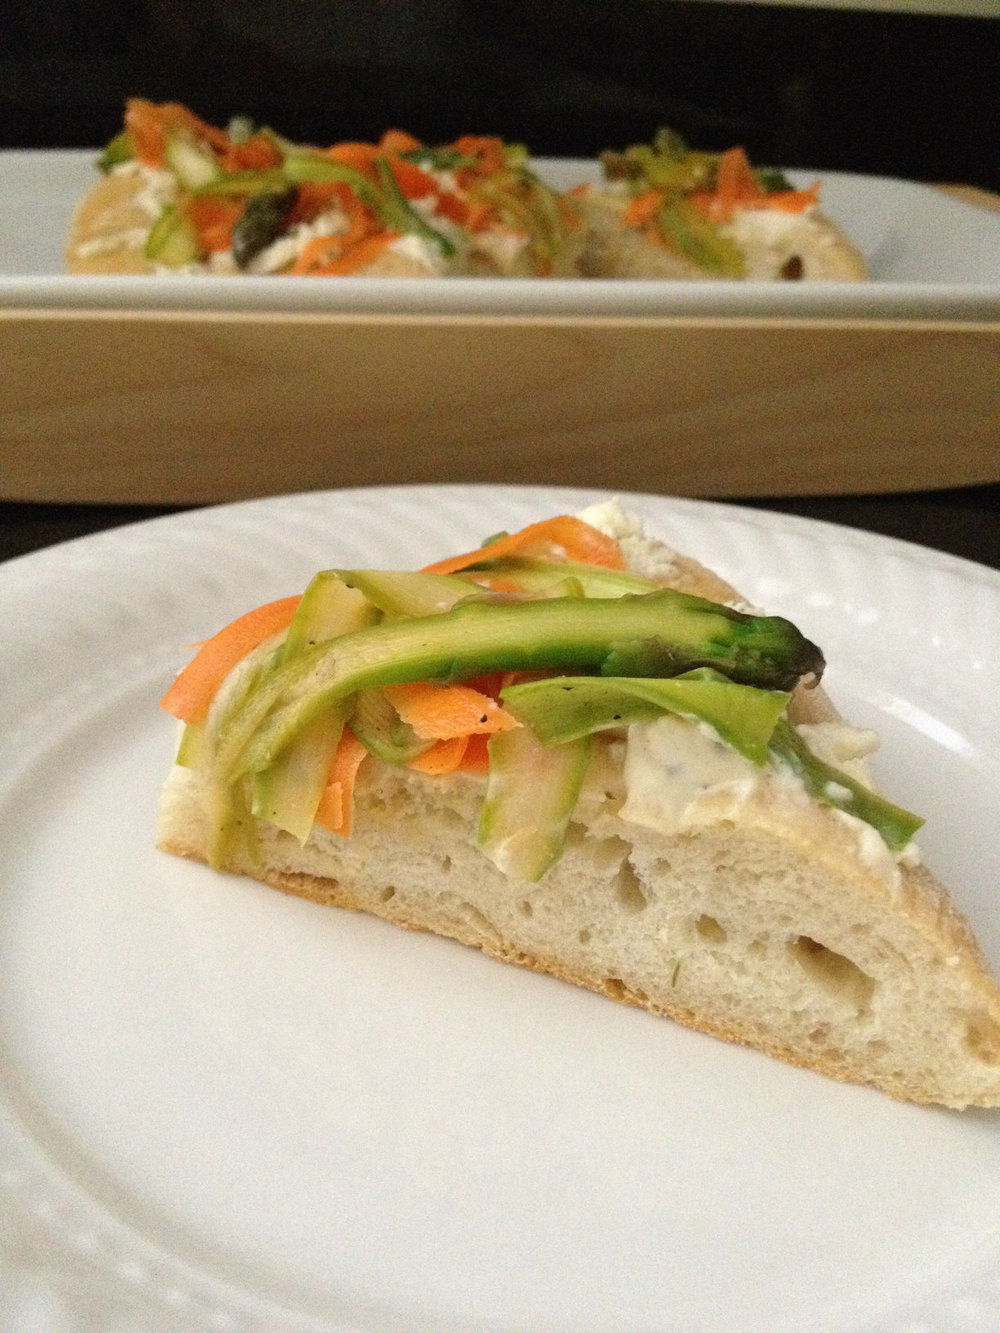 PickledAsparagusCarrotFlatbreadSlice.jpg